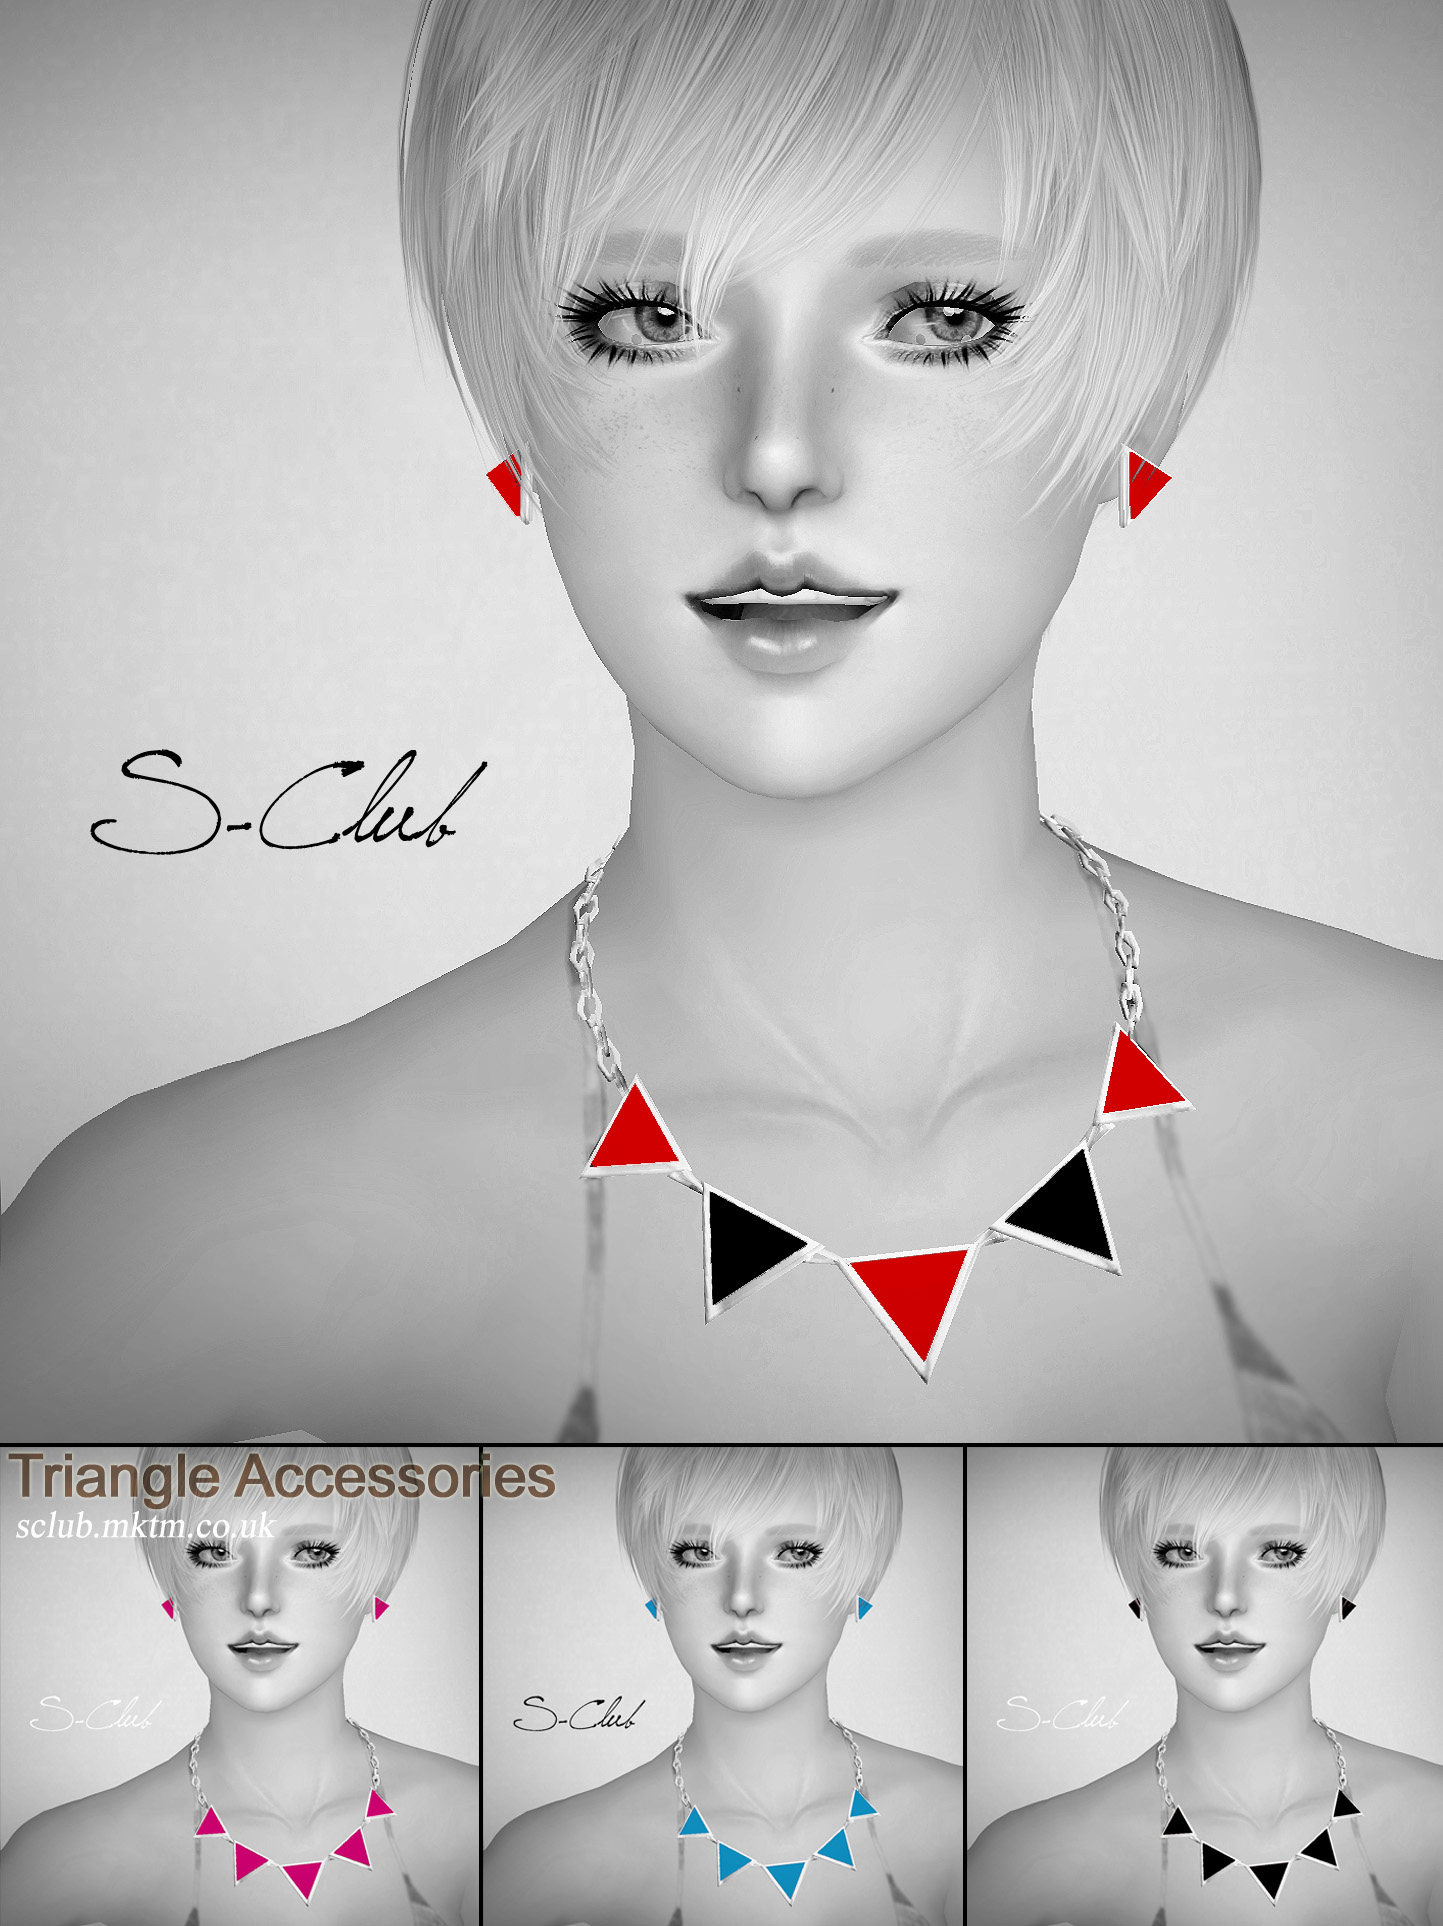 Triangle Accessories by S-Club